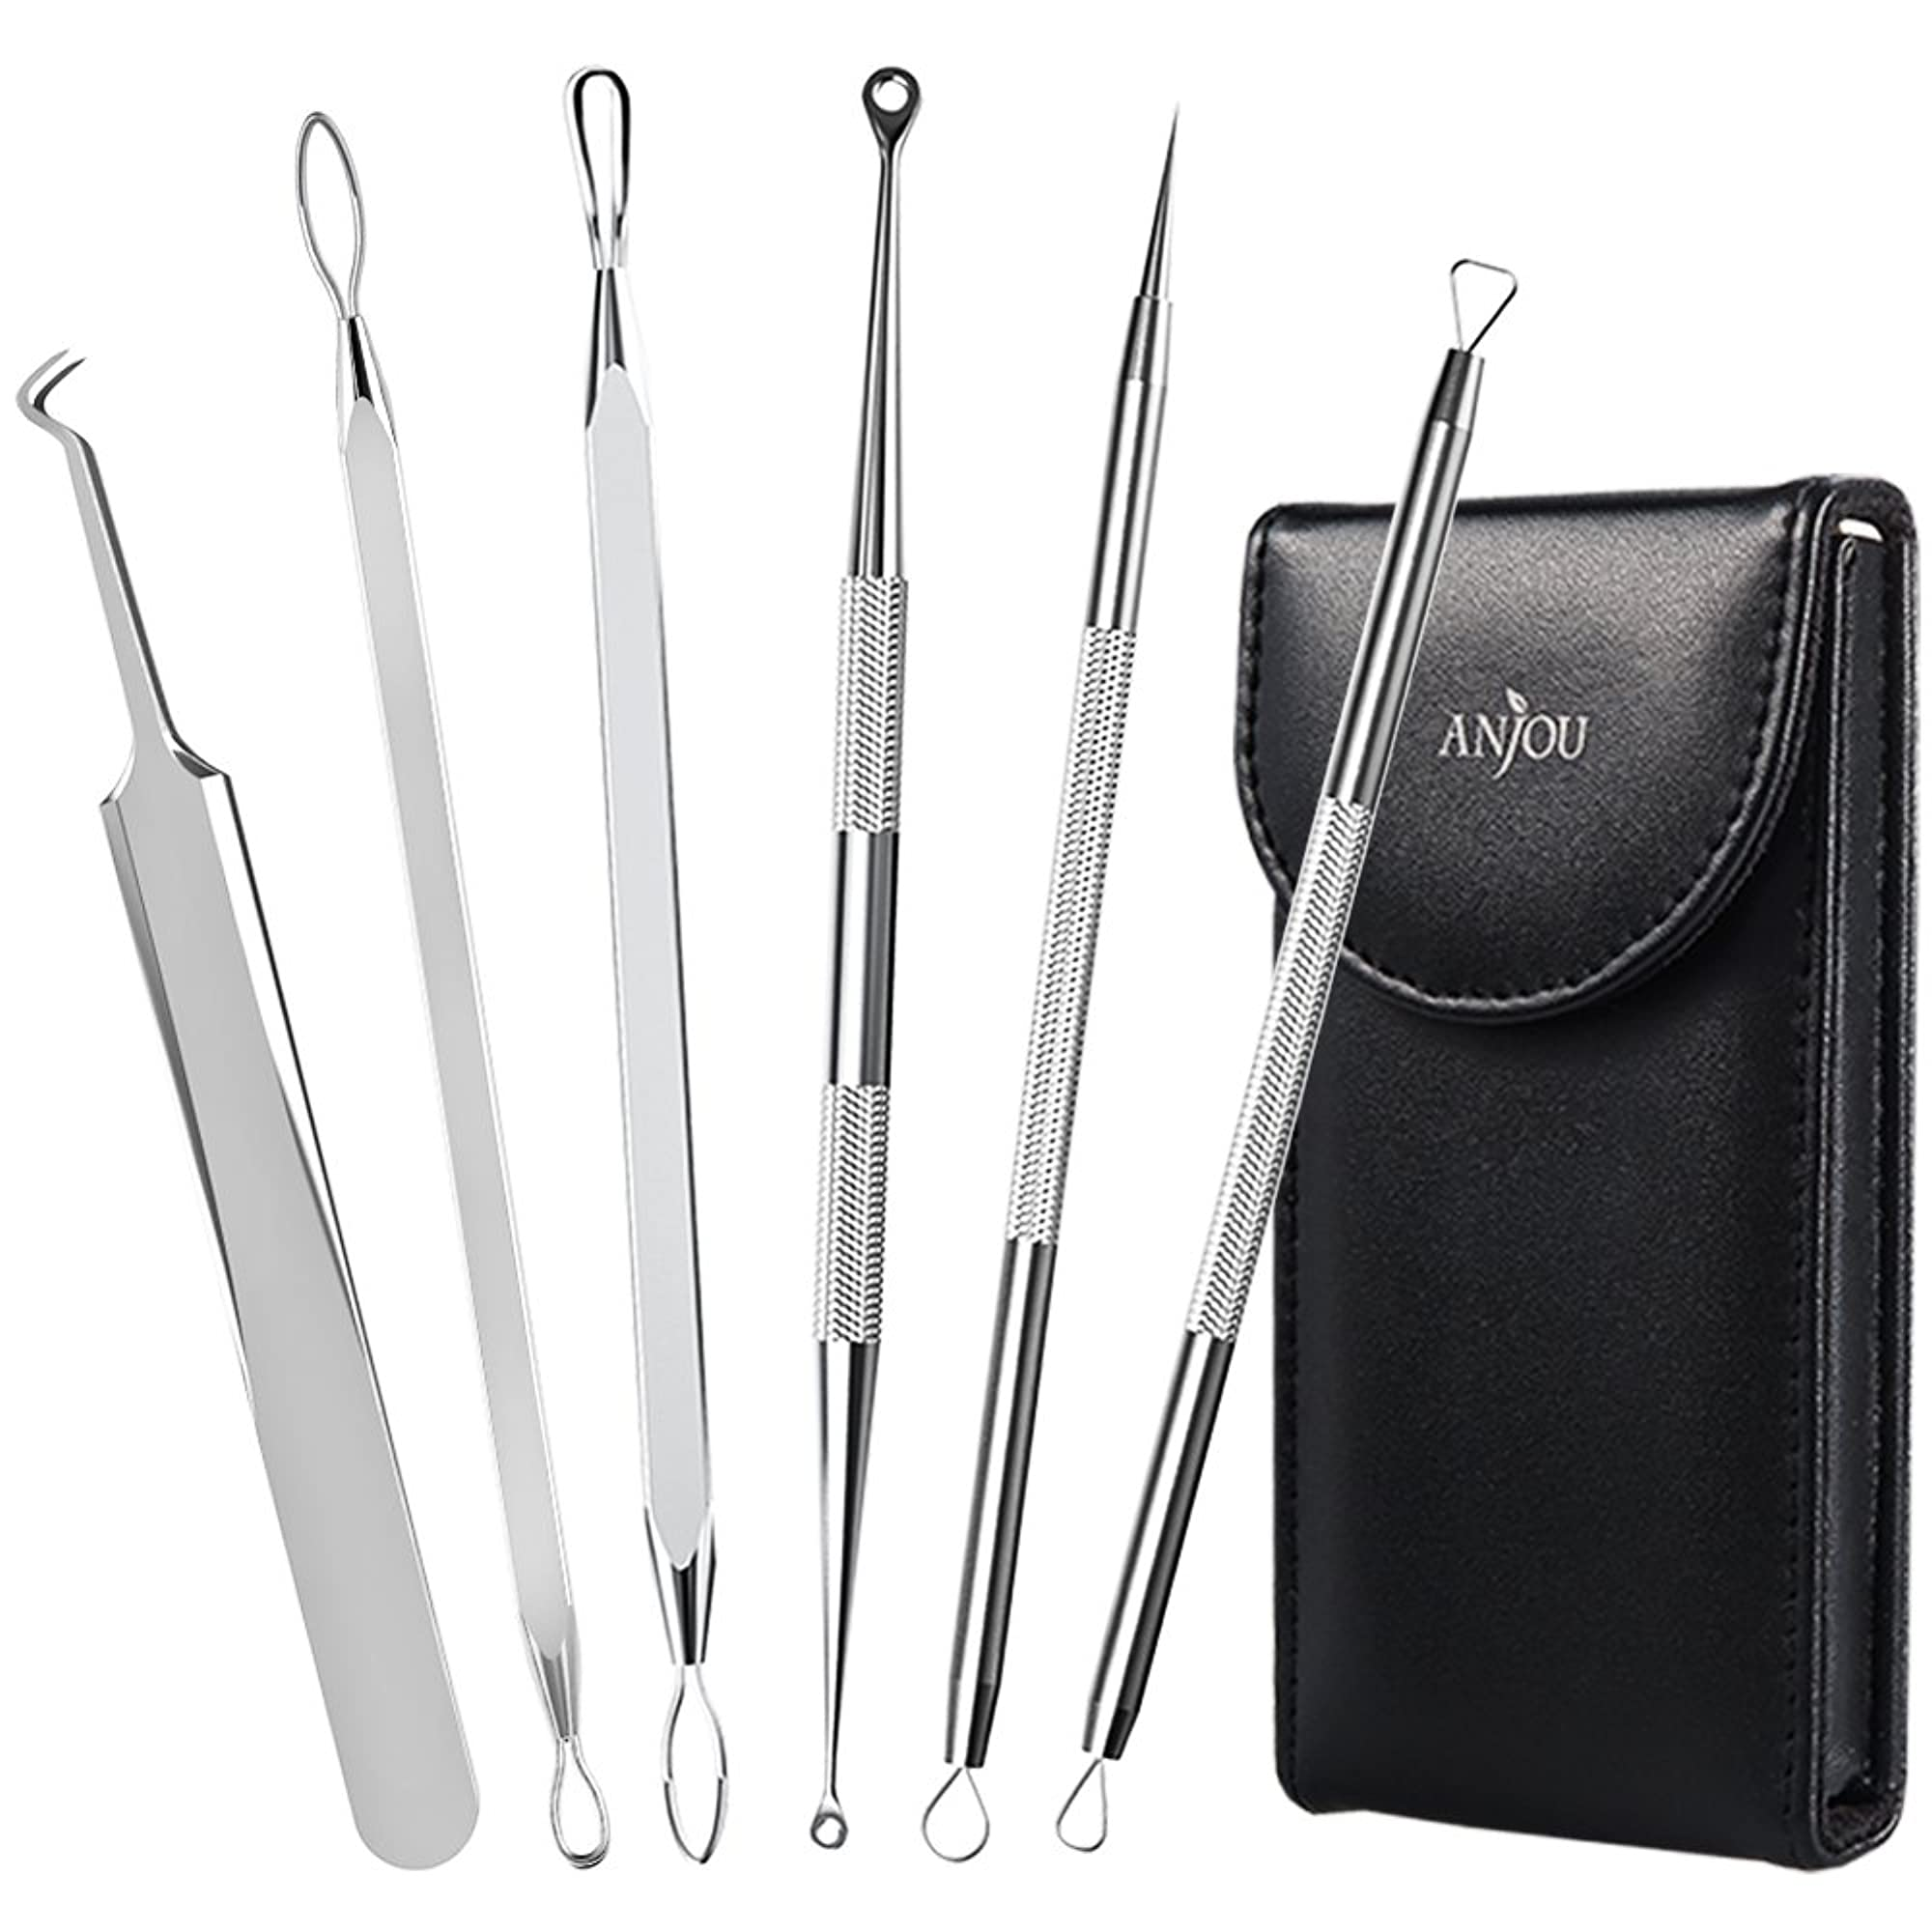 Blackhead Pimple Blemish Removal Tools Set